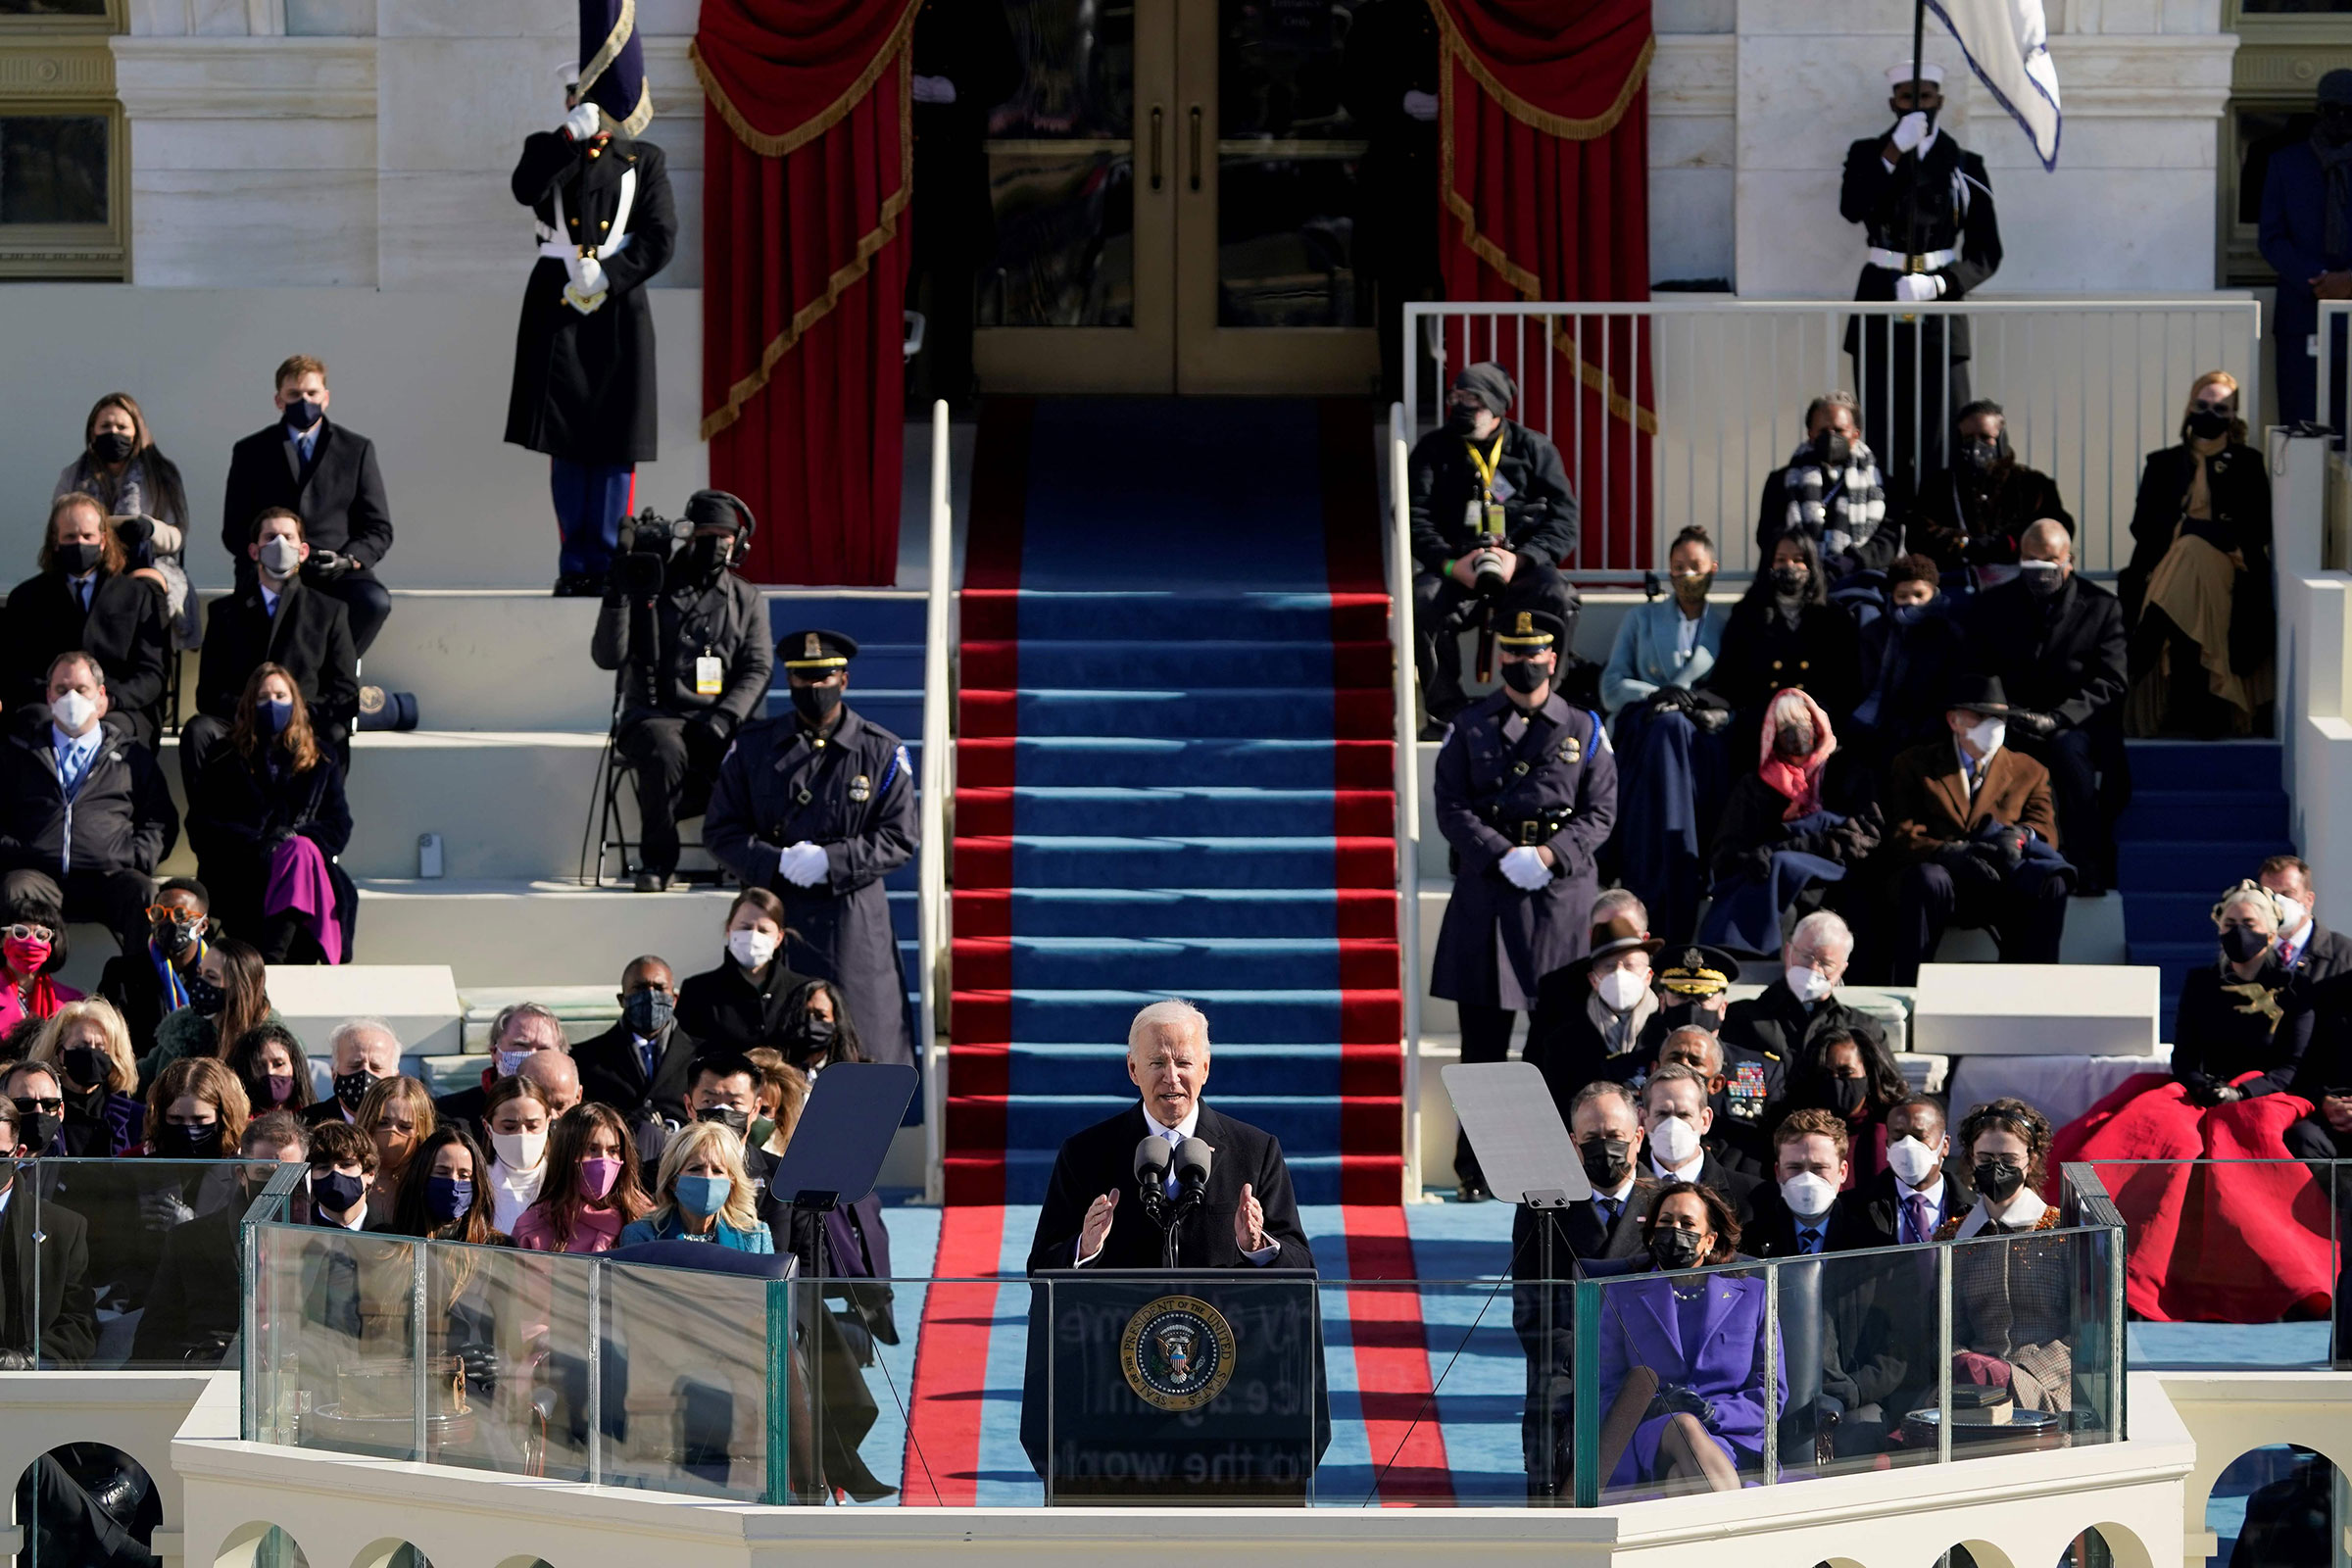 President Joe Biden delivers his inauguration speech after being sworn in as the 46th President of the United States in Washington on Jan. 20, 2021.